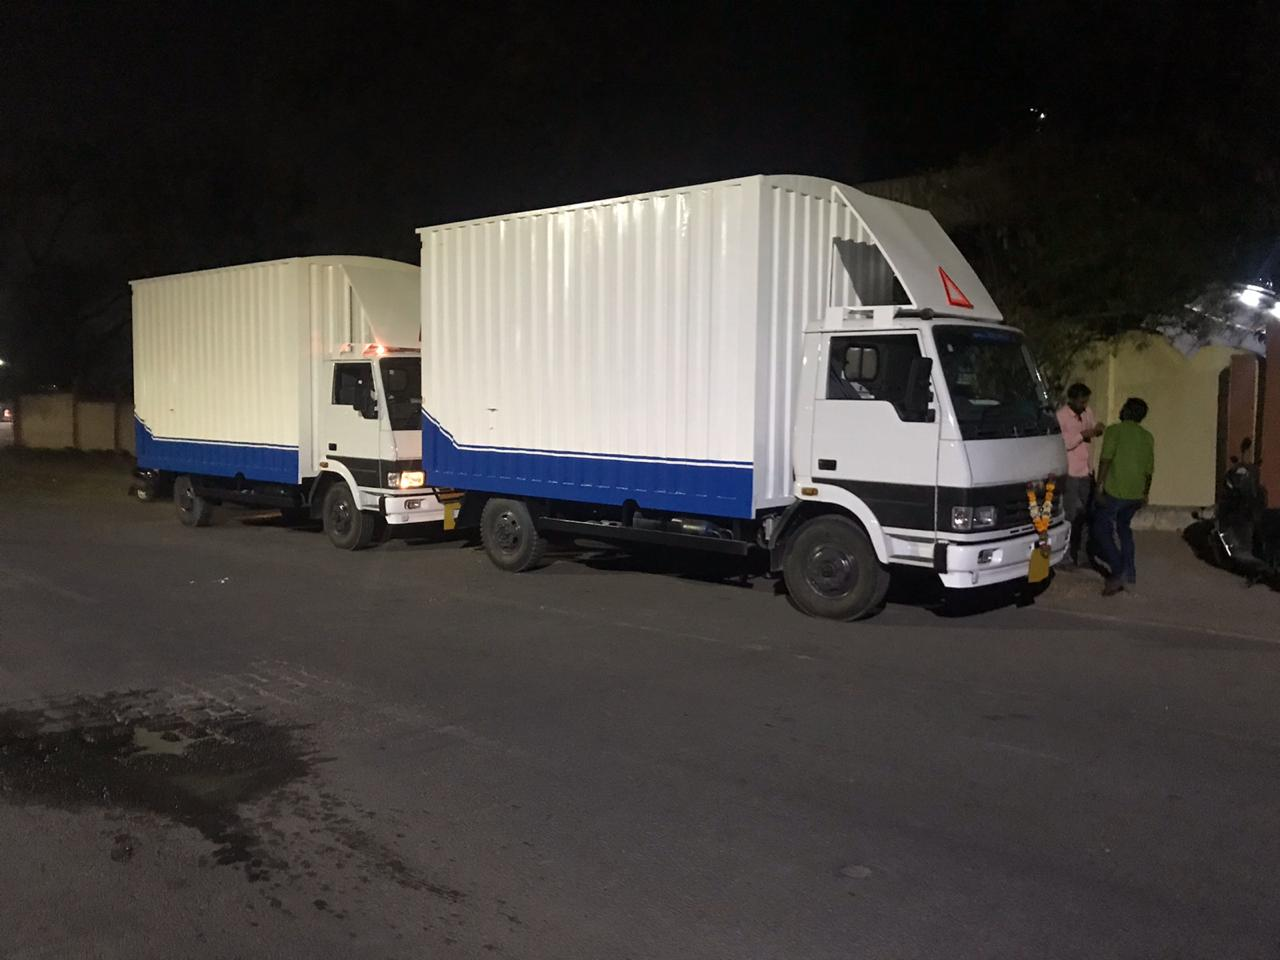 we provide close container vehicle for local shifting as well as for domestic so that household stuff will be safe and will not get damage by rain water in rainy season.